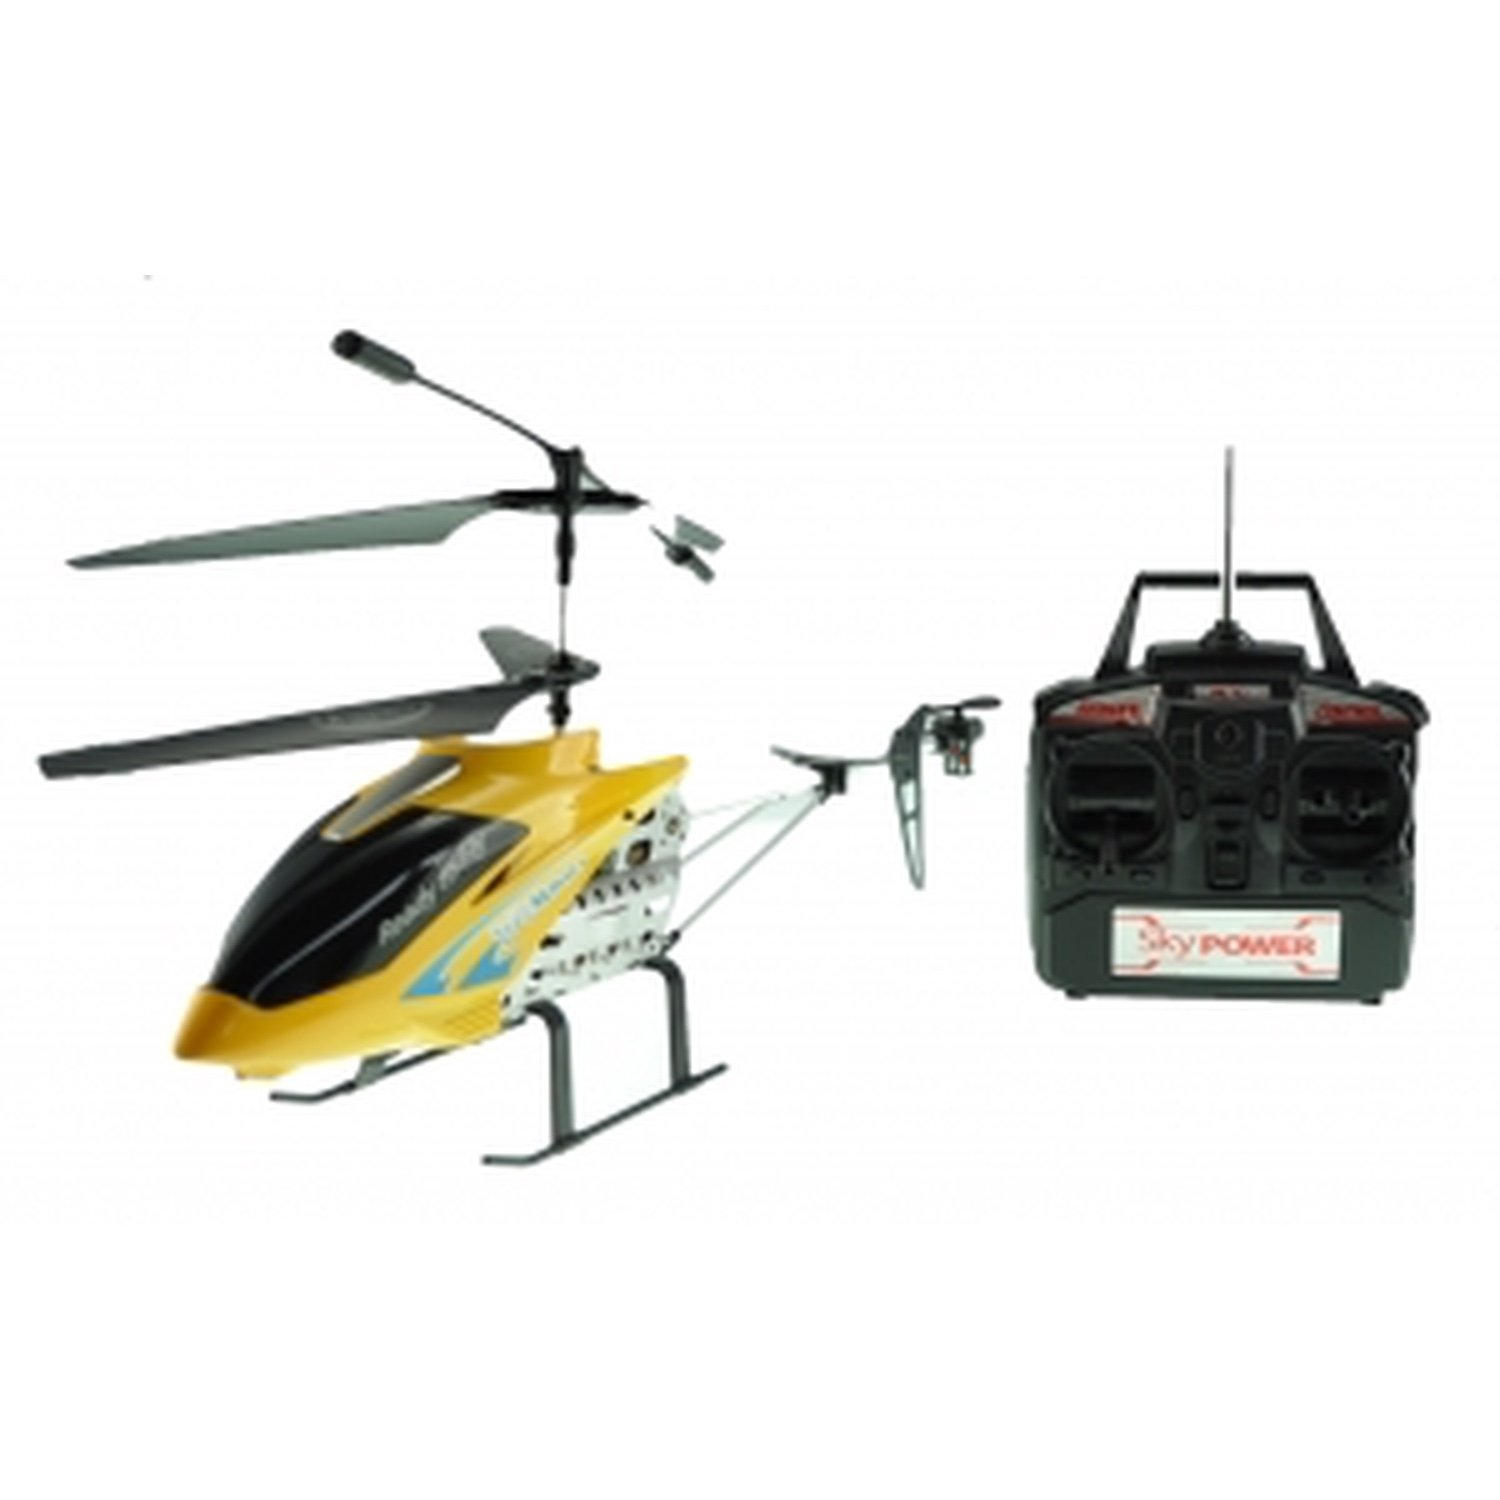 RC HELICOPTER MODEL DH8001 (NETWORK) 3.5 CHANEL, GYROSCOPE, METALLIC ALLOY